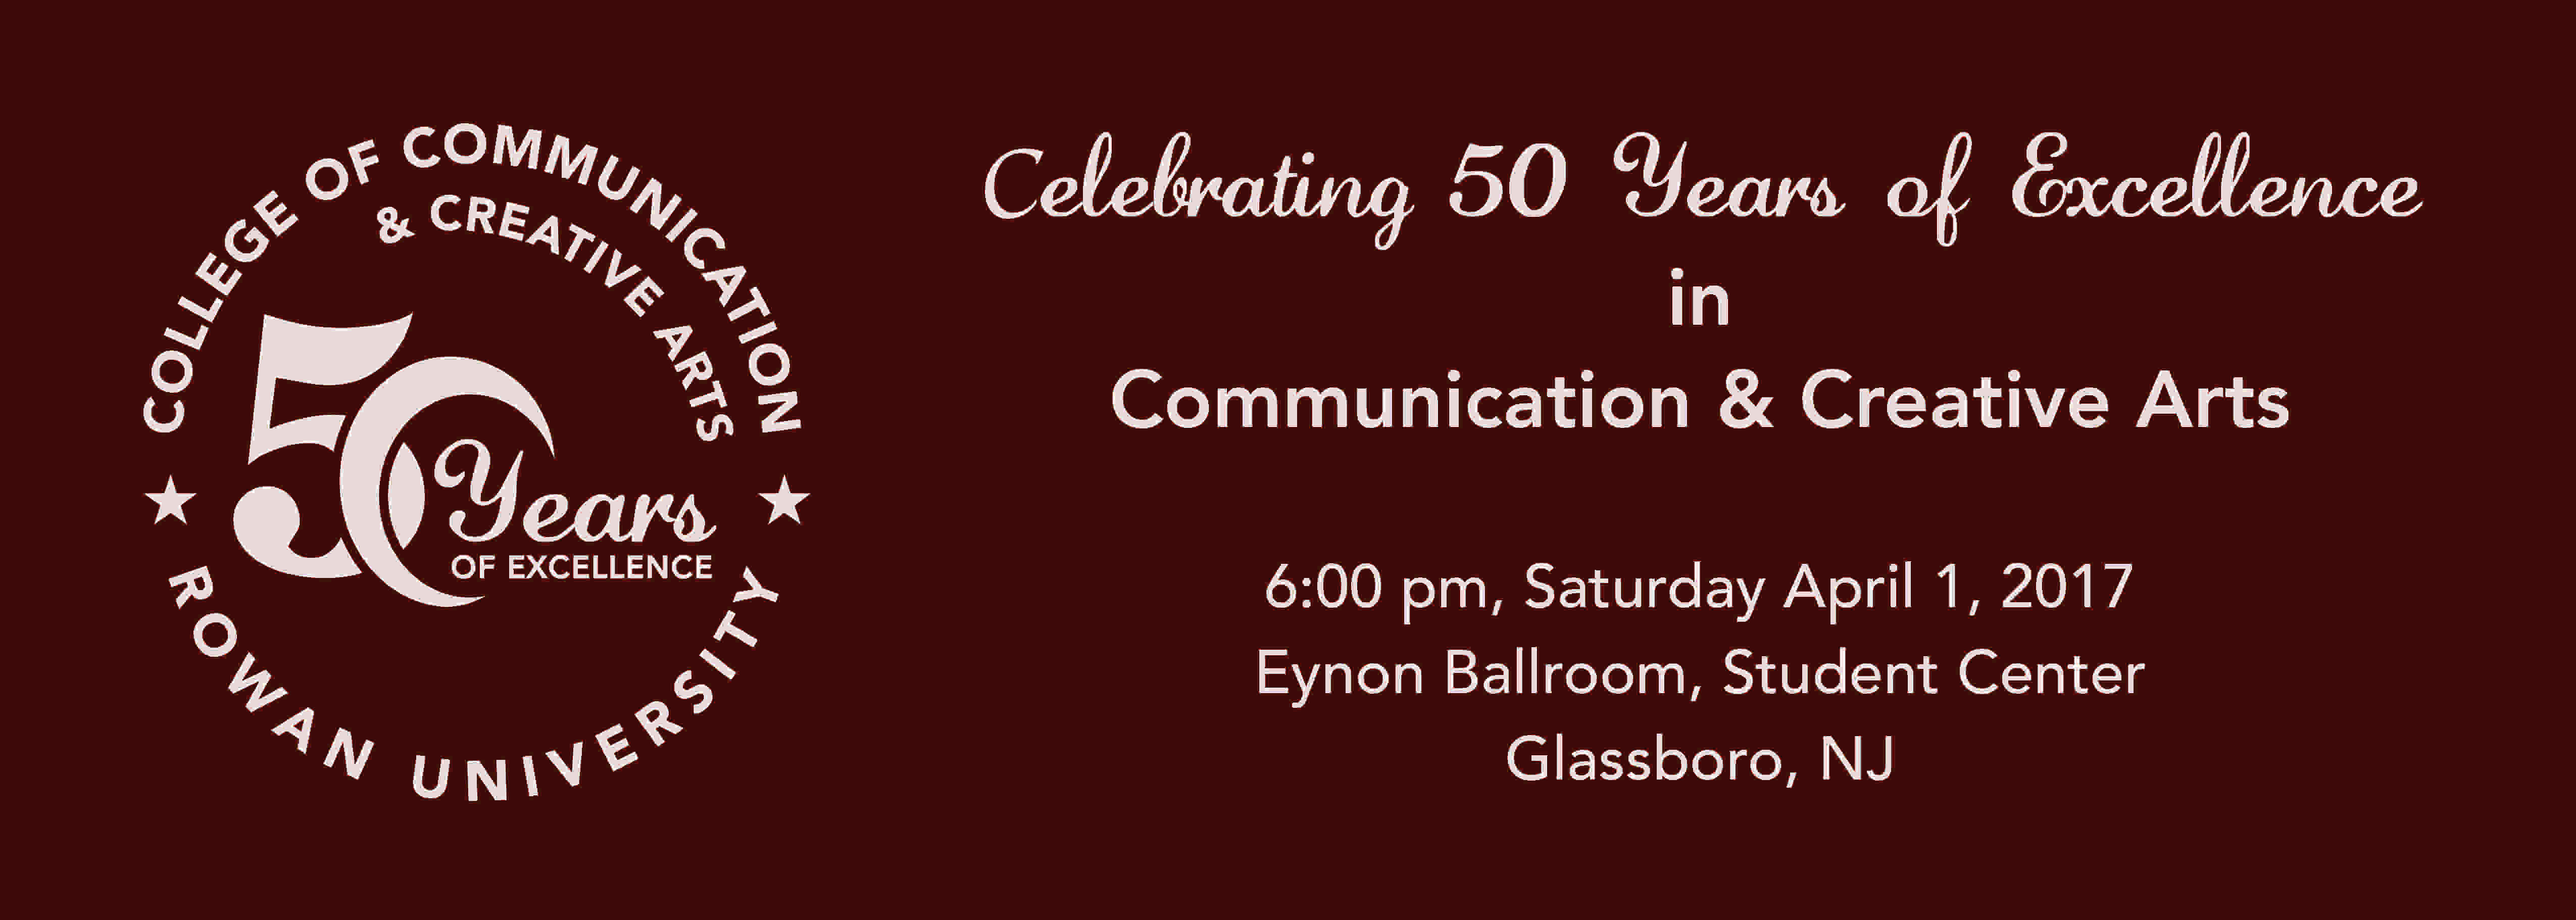 College of Communication and Creative Arts at Rowan University Celebrates 50 Years of Excellence on April 1, 2017